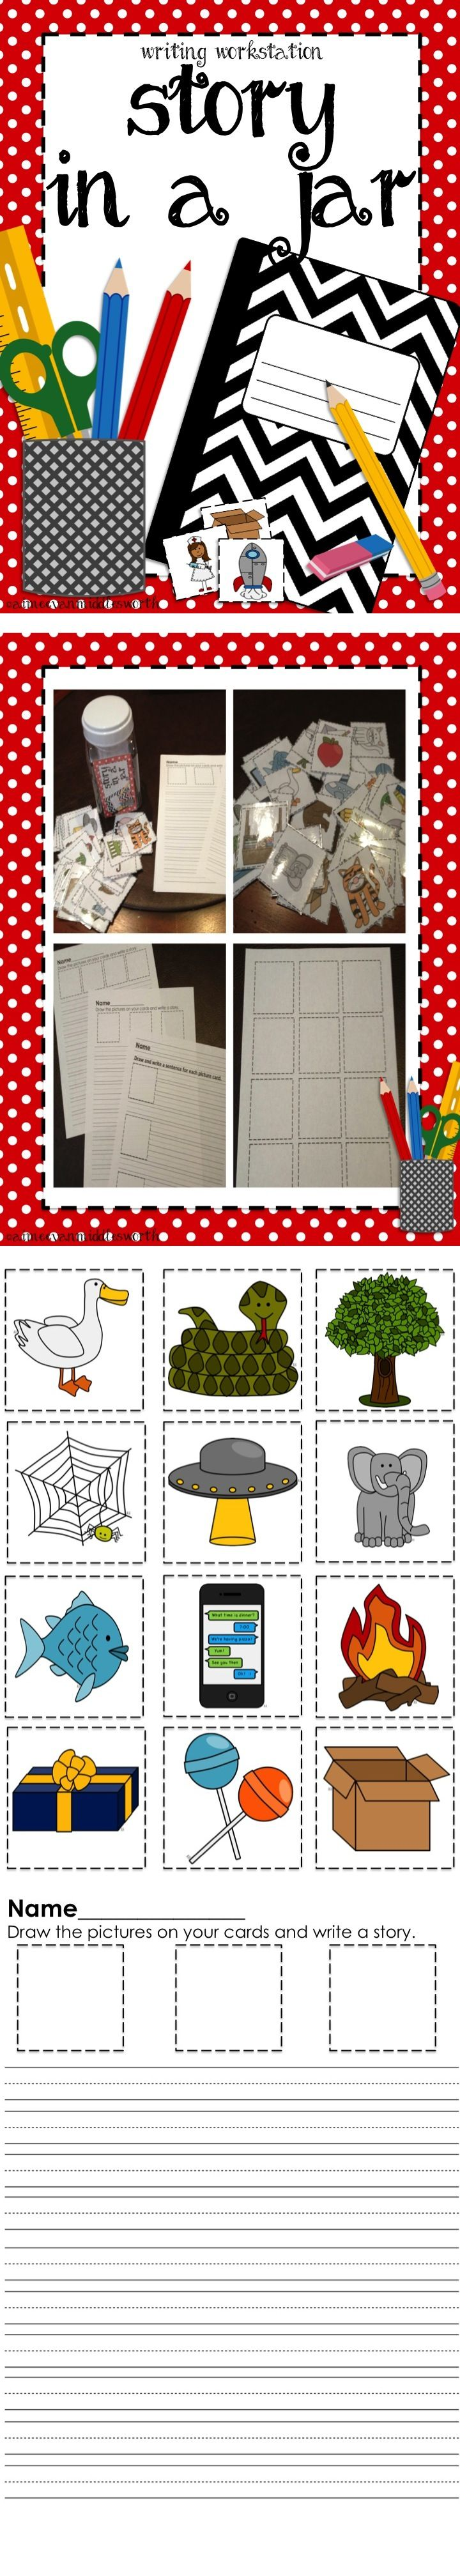 medium resolution of Creative Writing For 2nd Grade — Free Writing Worksheets for 2nd Grade  Students